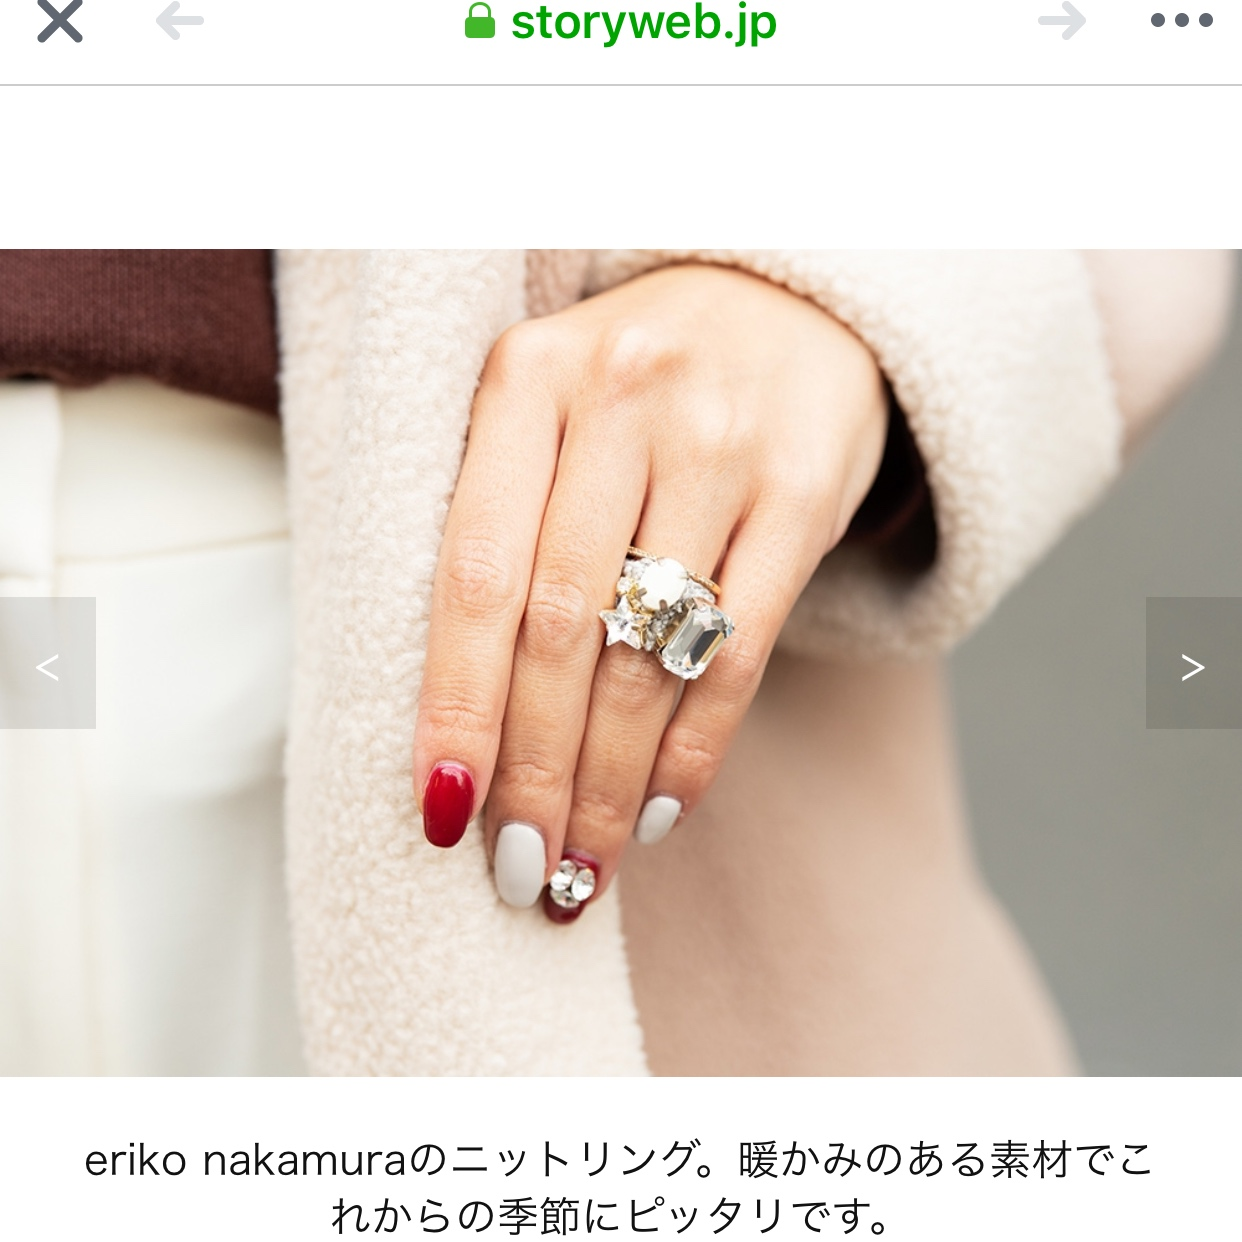 knit-ringをSTORY webに紹介していただきました。